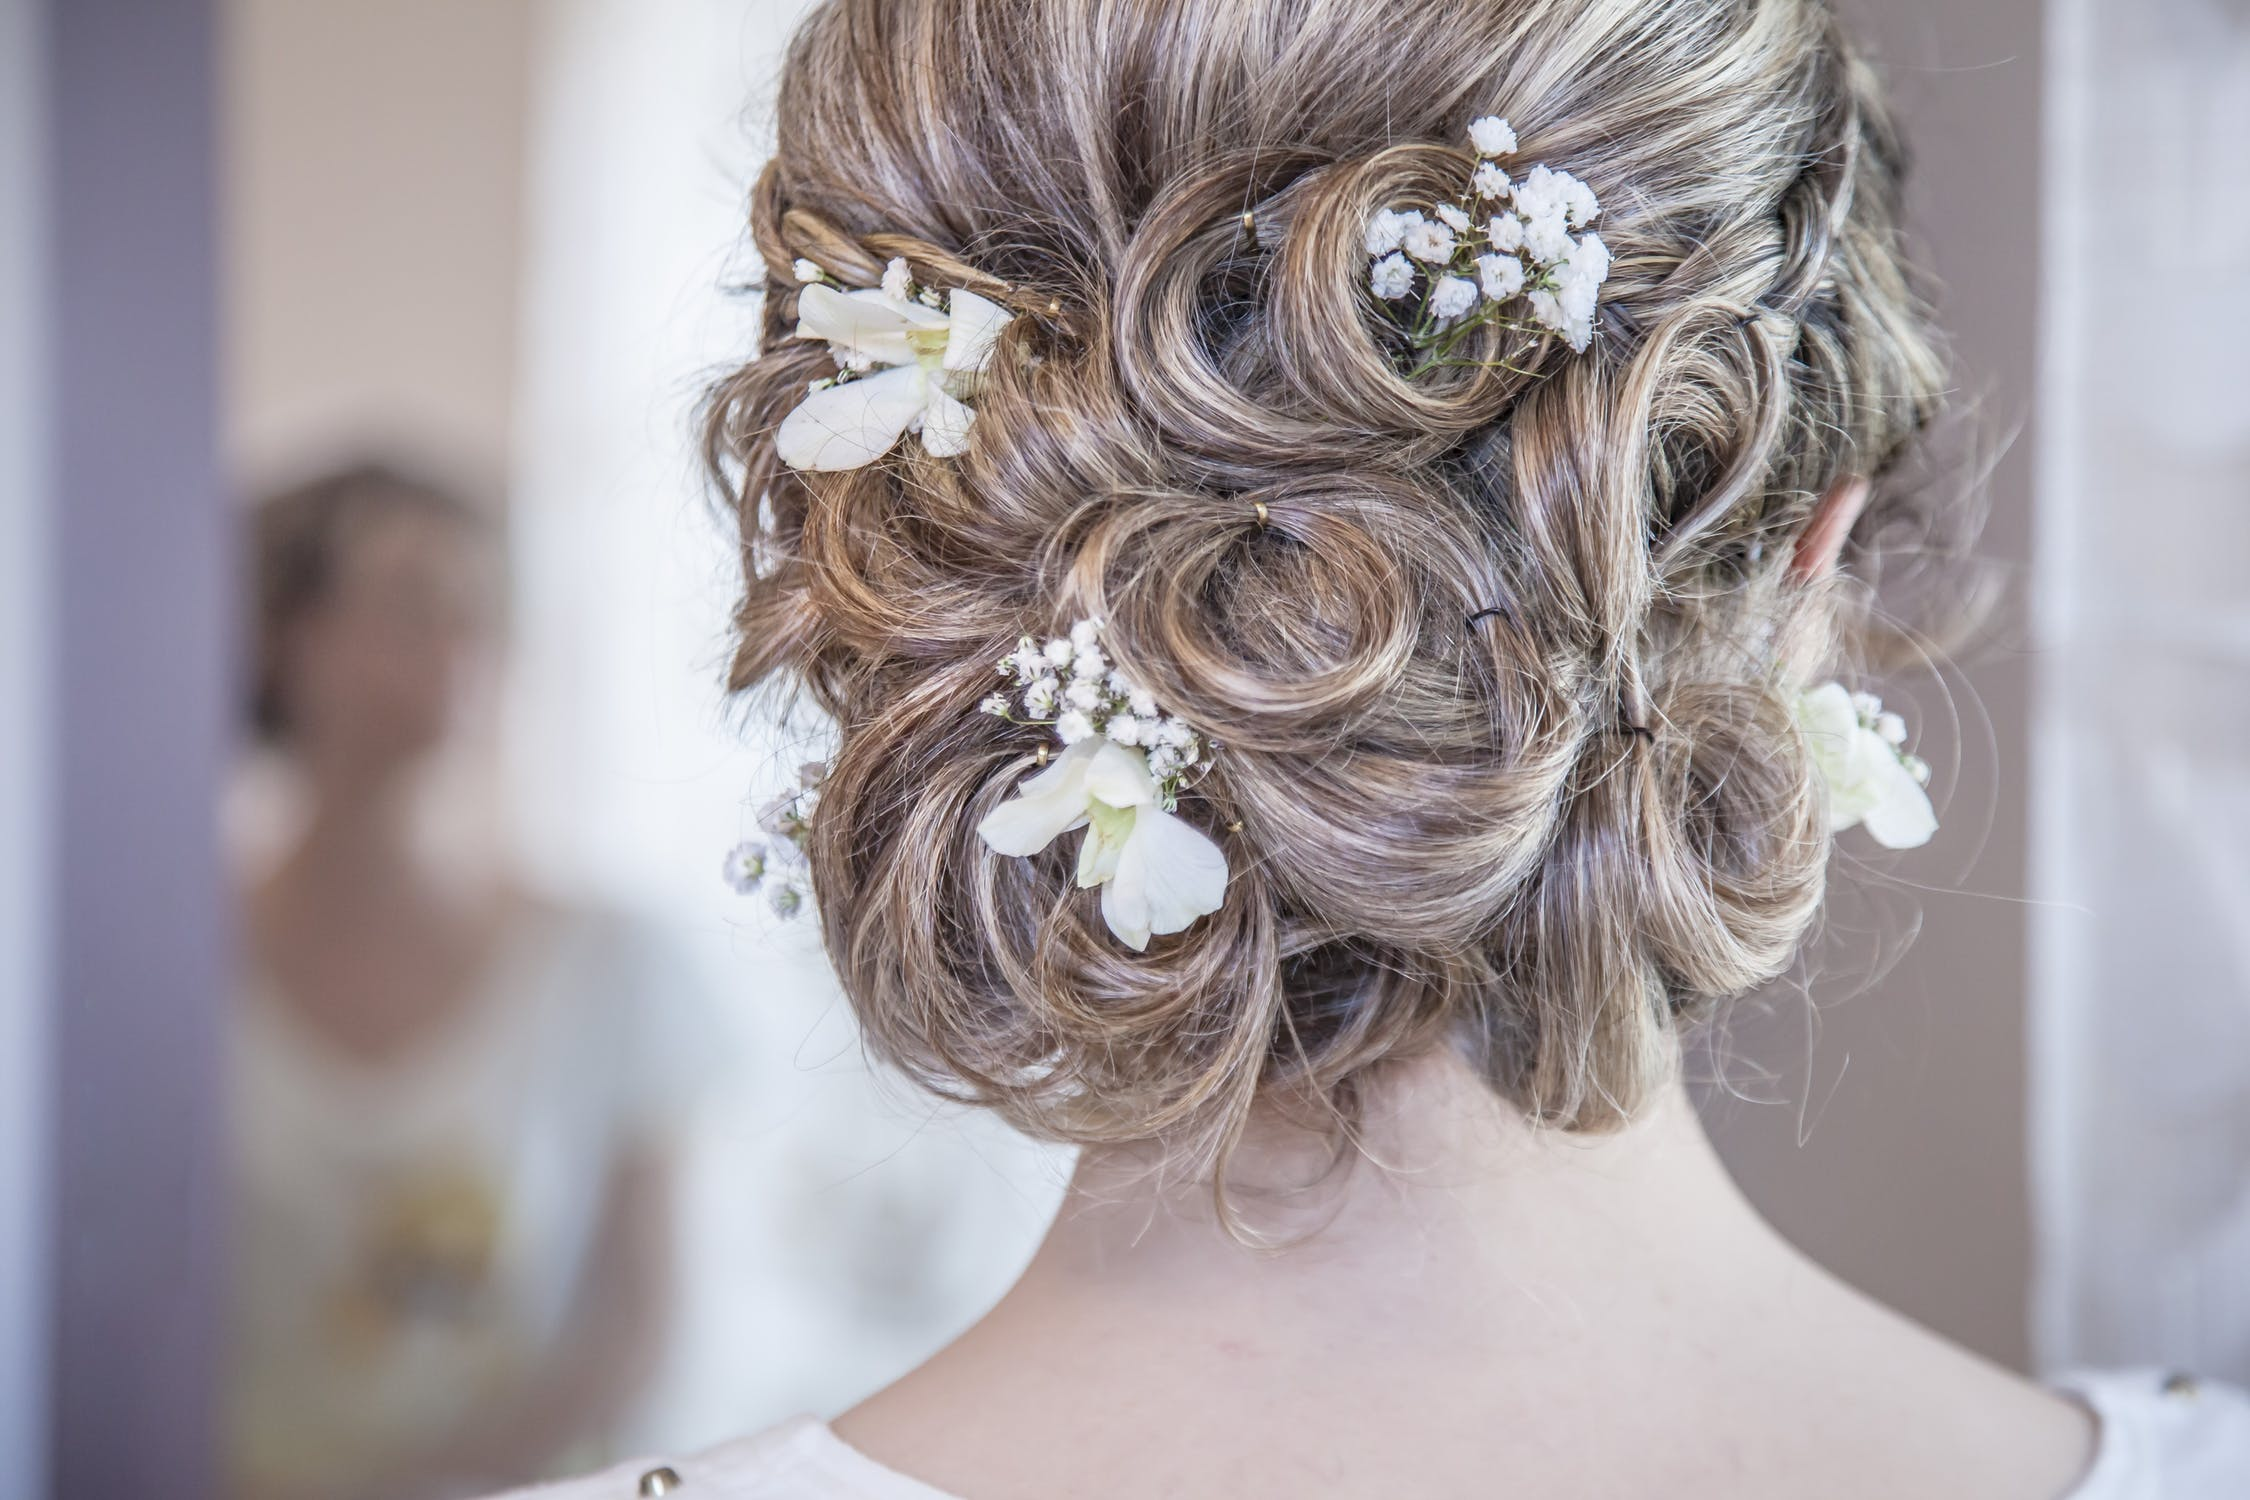 pexels photo 355063 - Top Hairstyles for All Bridesmaid to Rock the Look